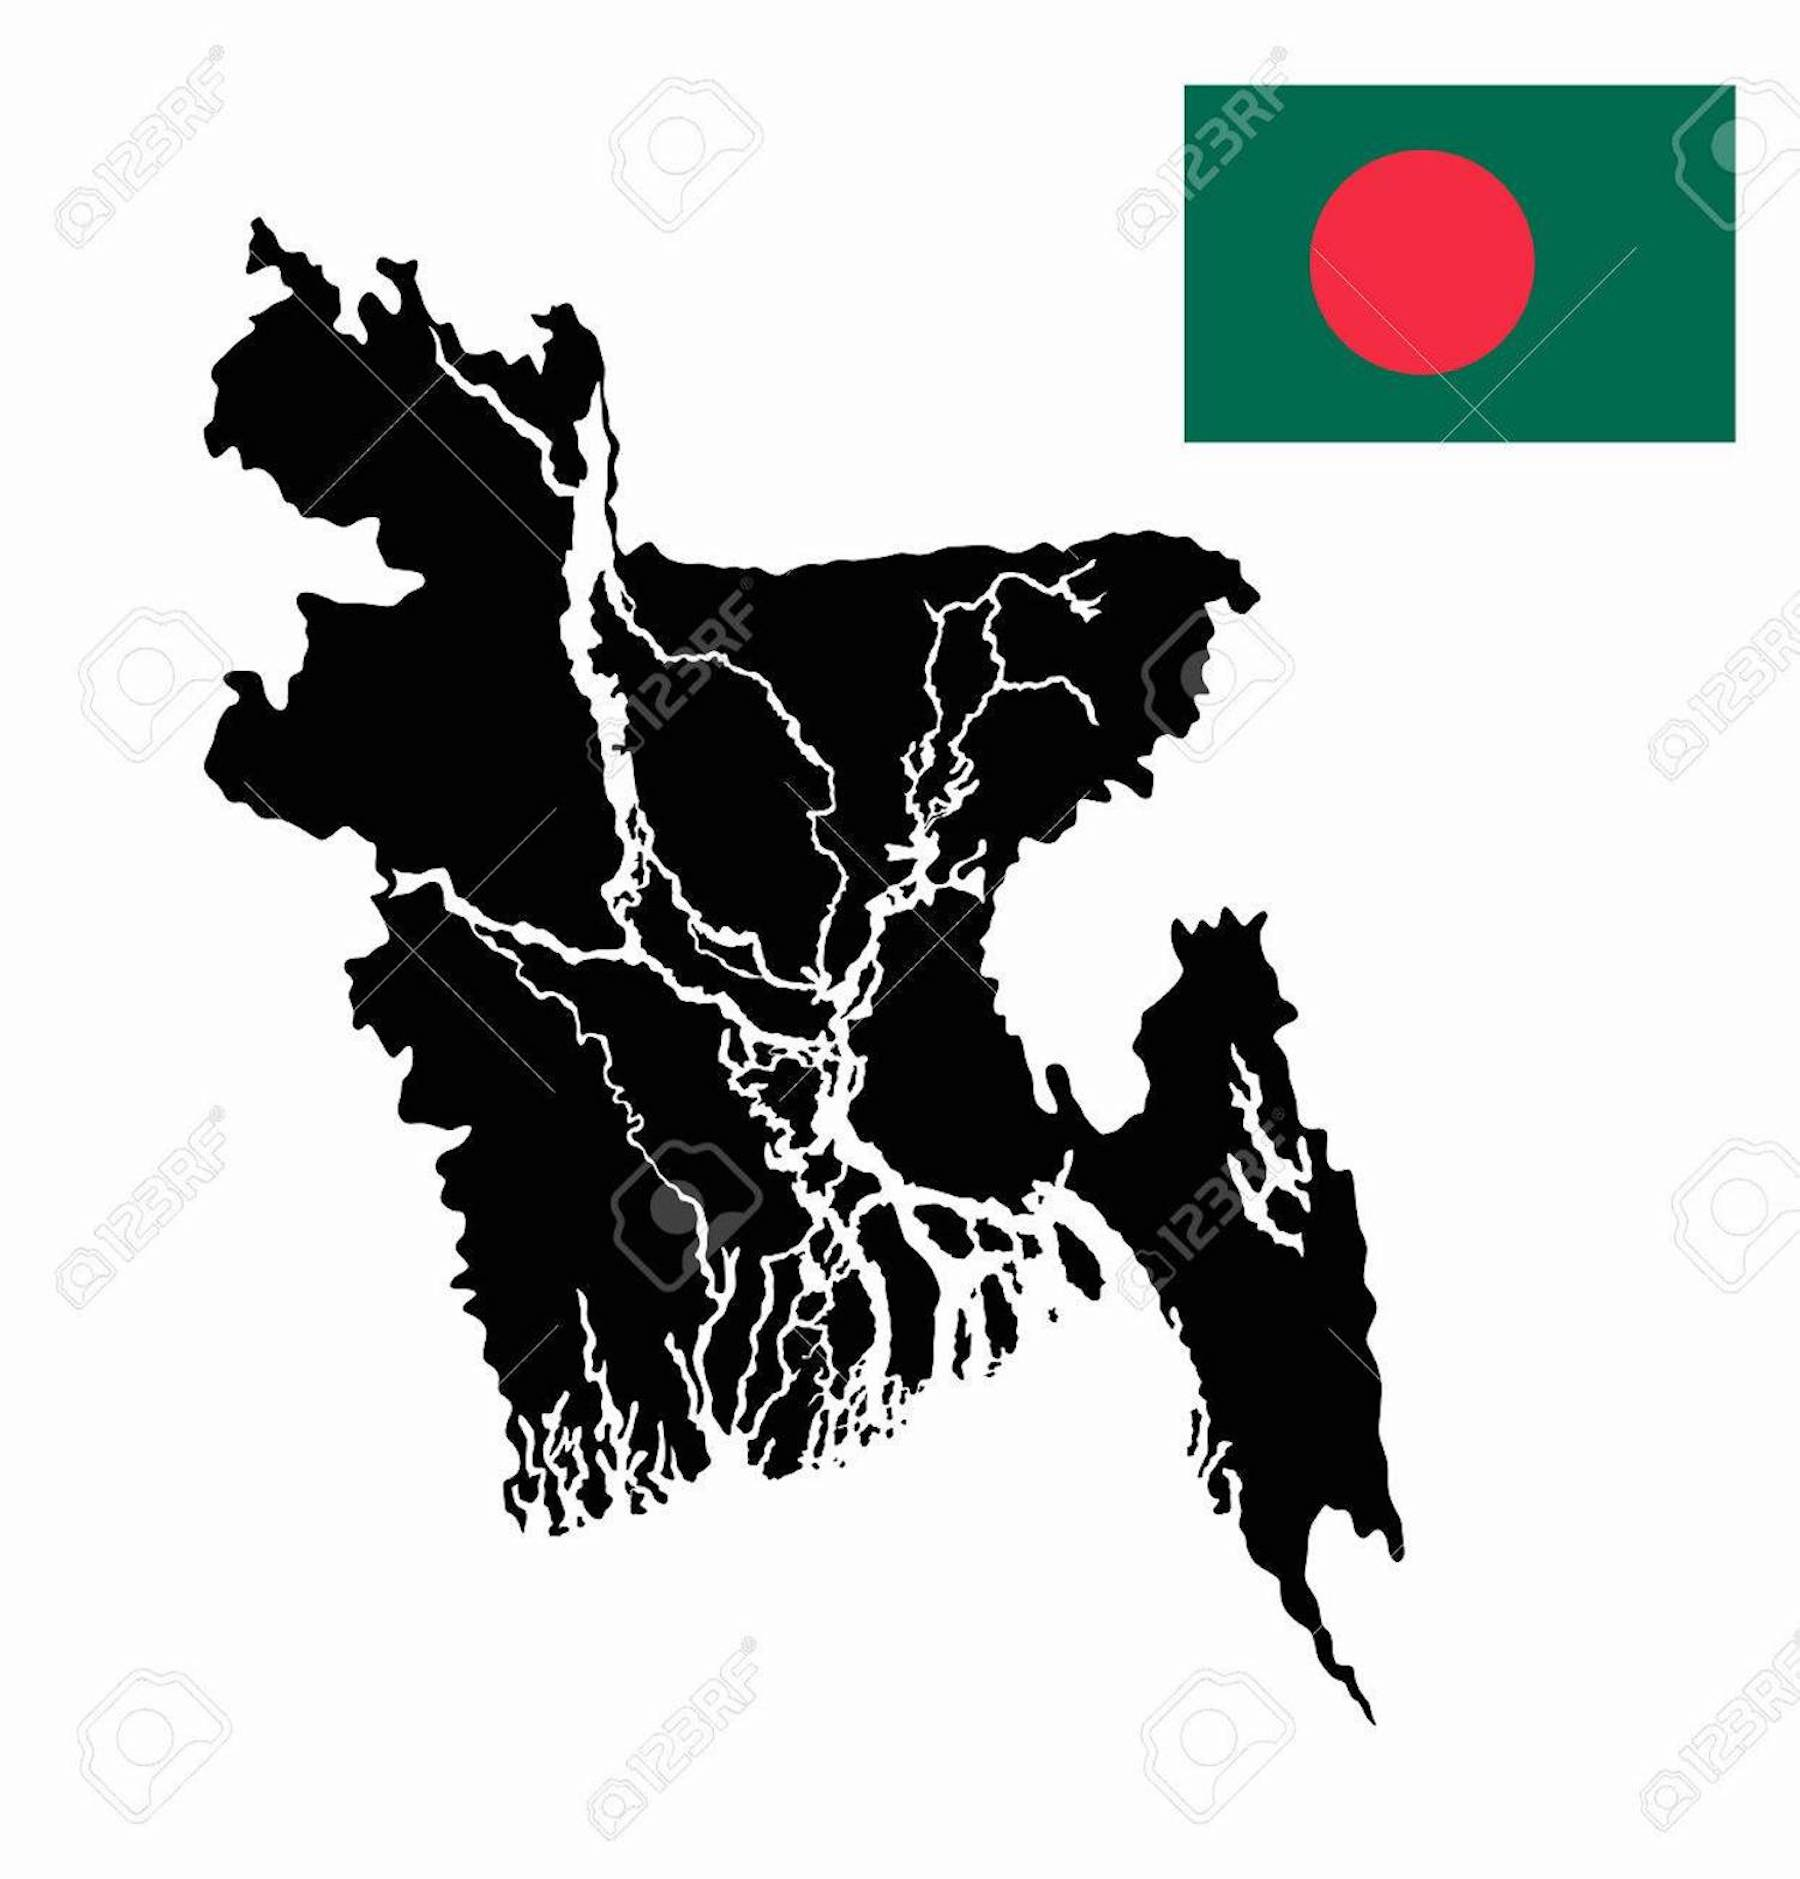 Map Of Bangladesh Clipart, Real Maps, And Other Free.